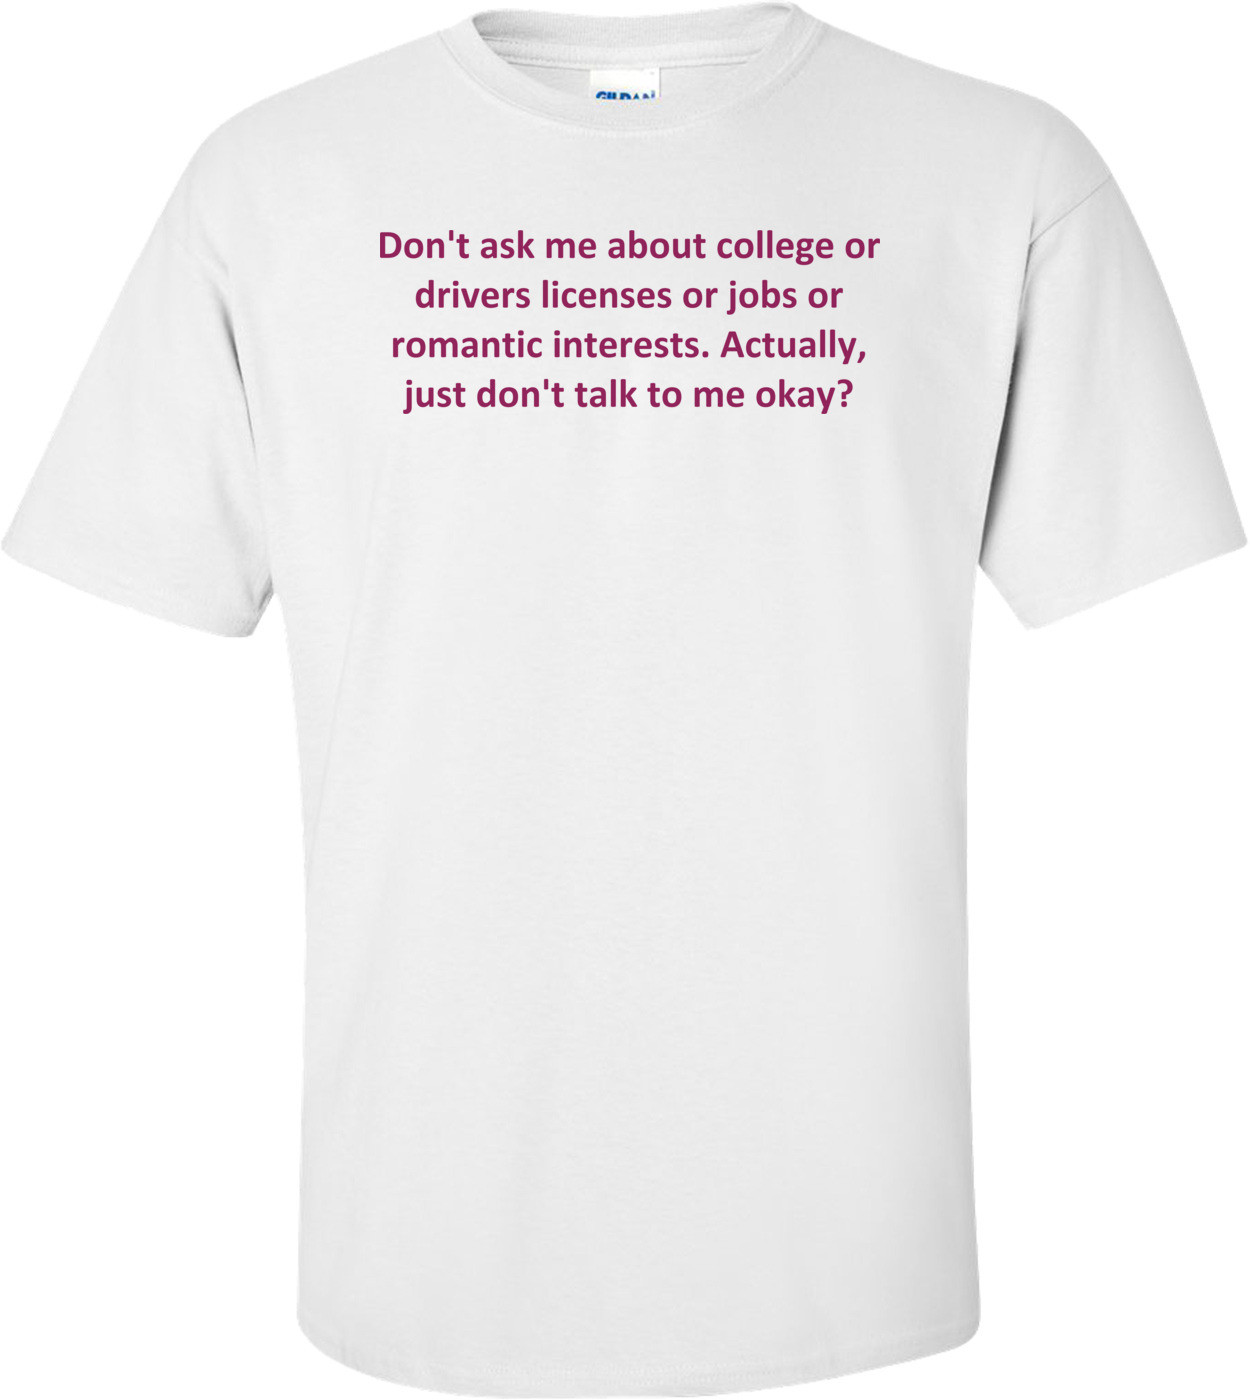 Don't ask me about college or drivers licenses or jobs or romantic interests. Actually, just don't talk to me okay? Shirt